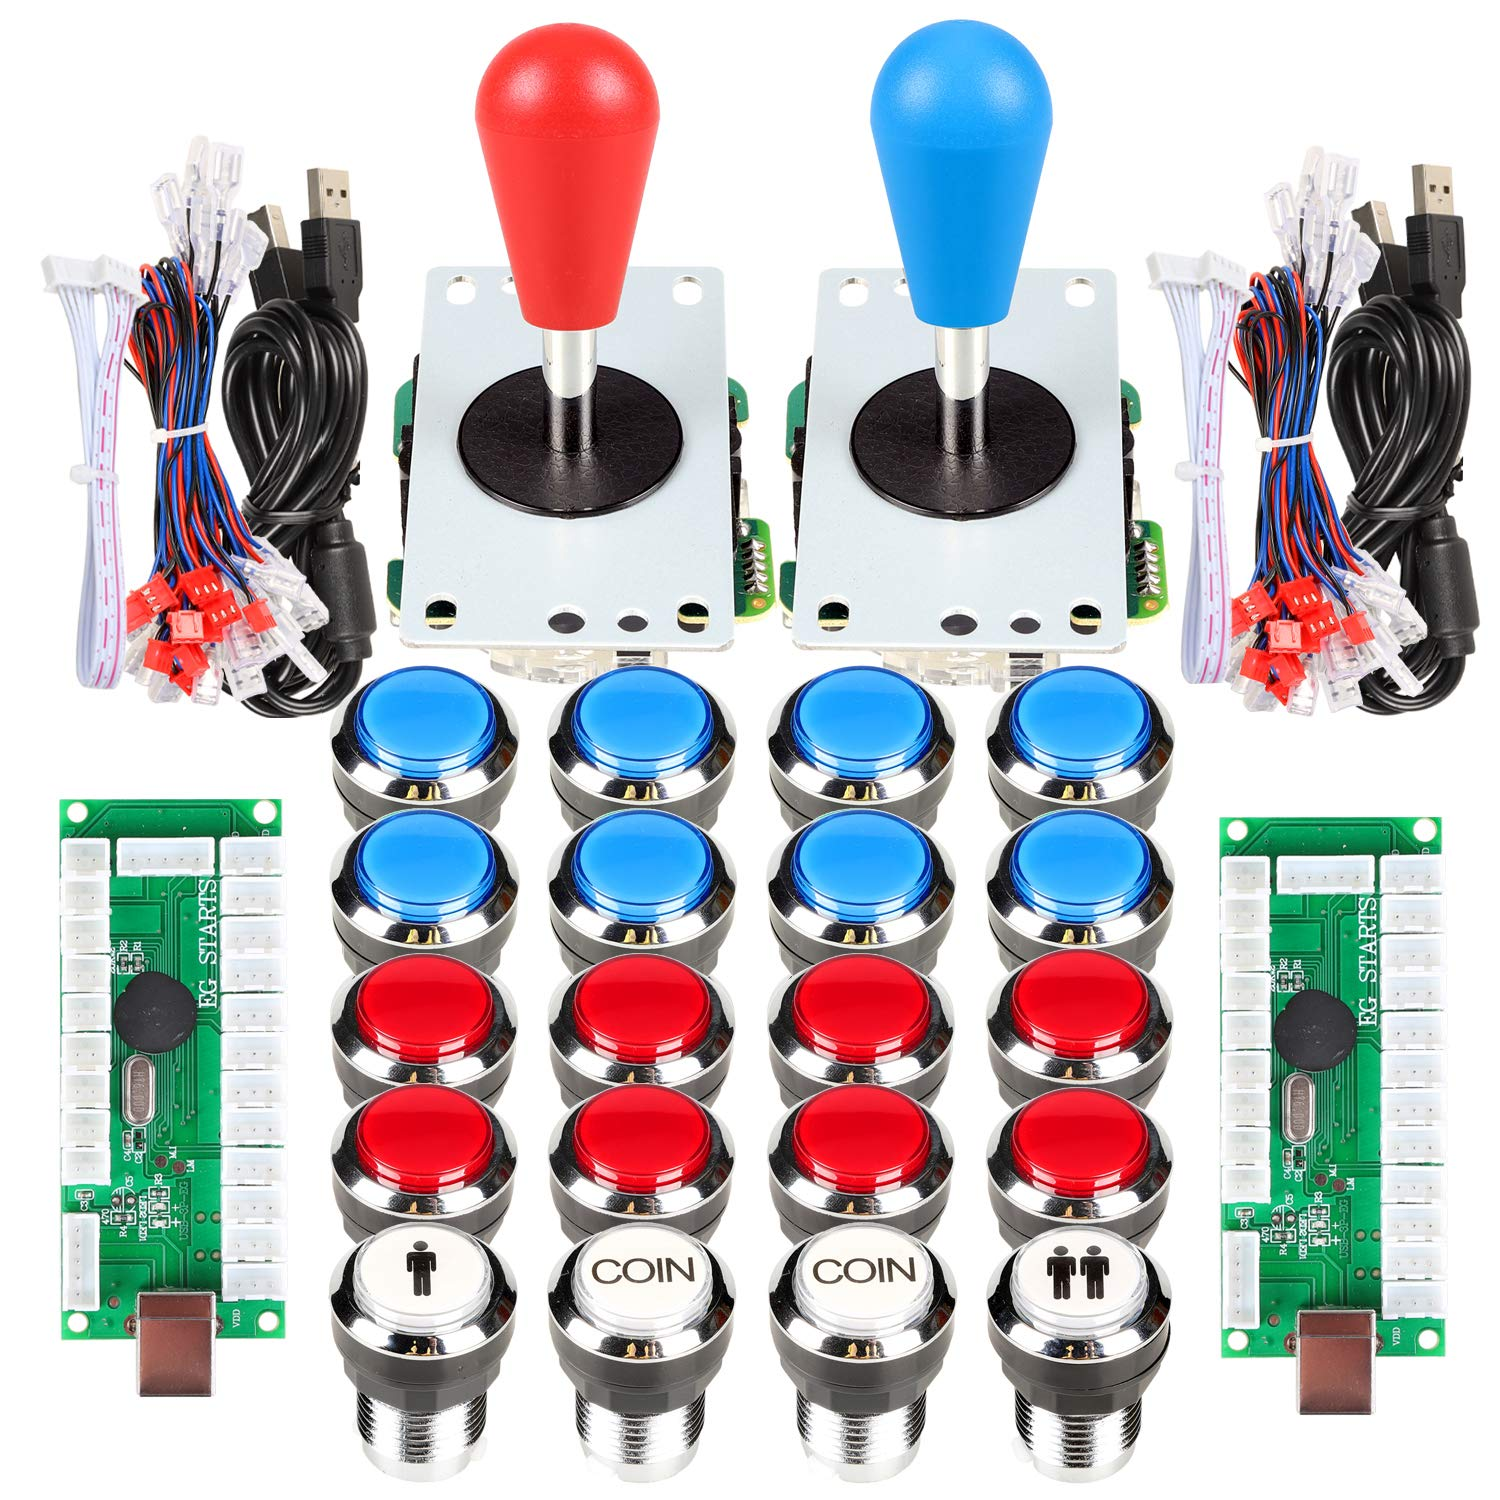 EG STARTS Arcade Gamepads & Standard Controllers DIY Games MAME Kit 2 Ellipse Oval Joystick + 20 LED Chrome Buttons (Red-Blue Colors) by EG STARTS